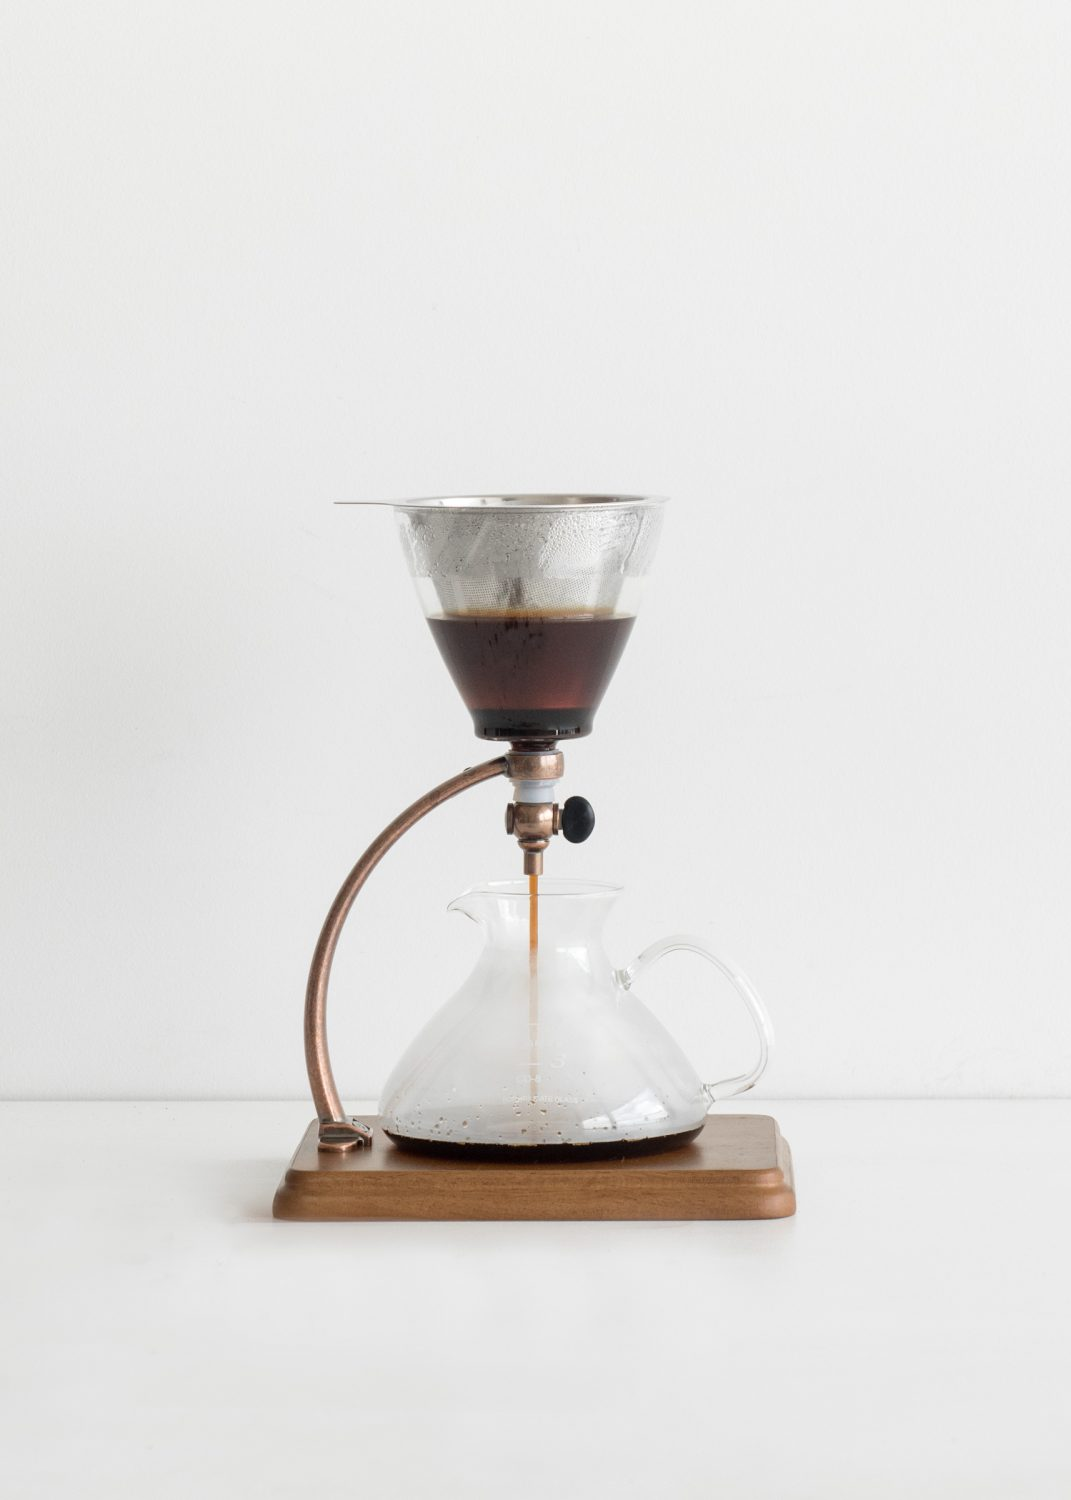 Guide To Pour Over Coffee | How To Make Pour Over Coffee - HEY GENTS Magazine - Yama Silverton